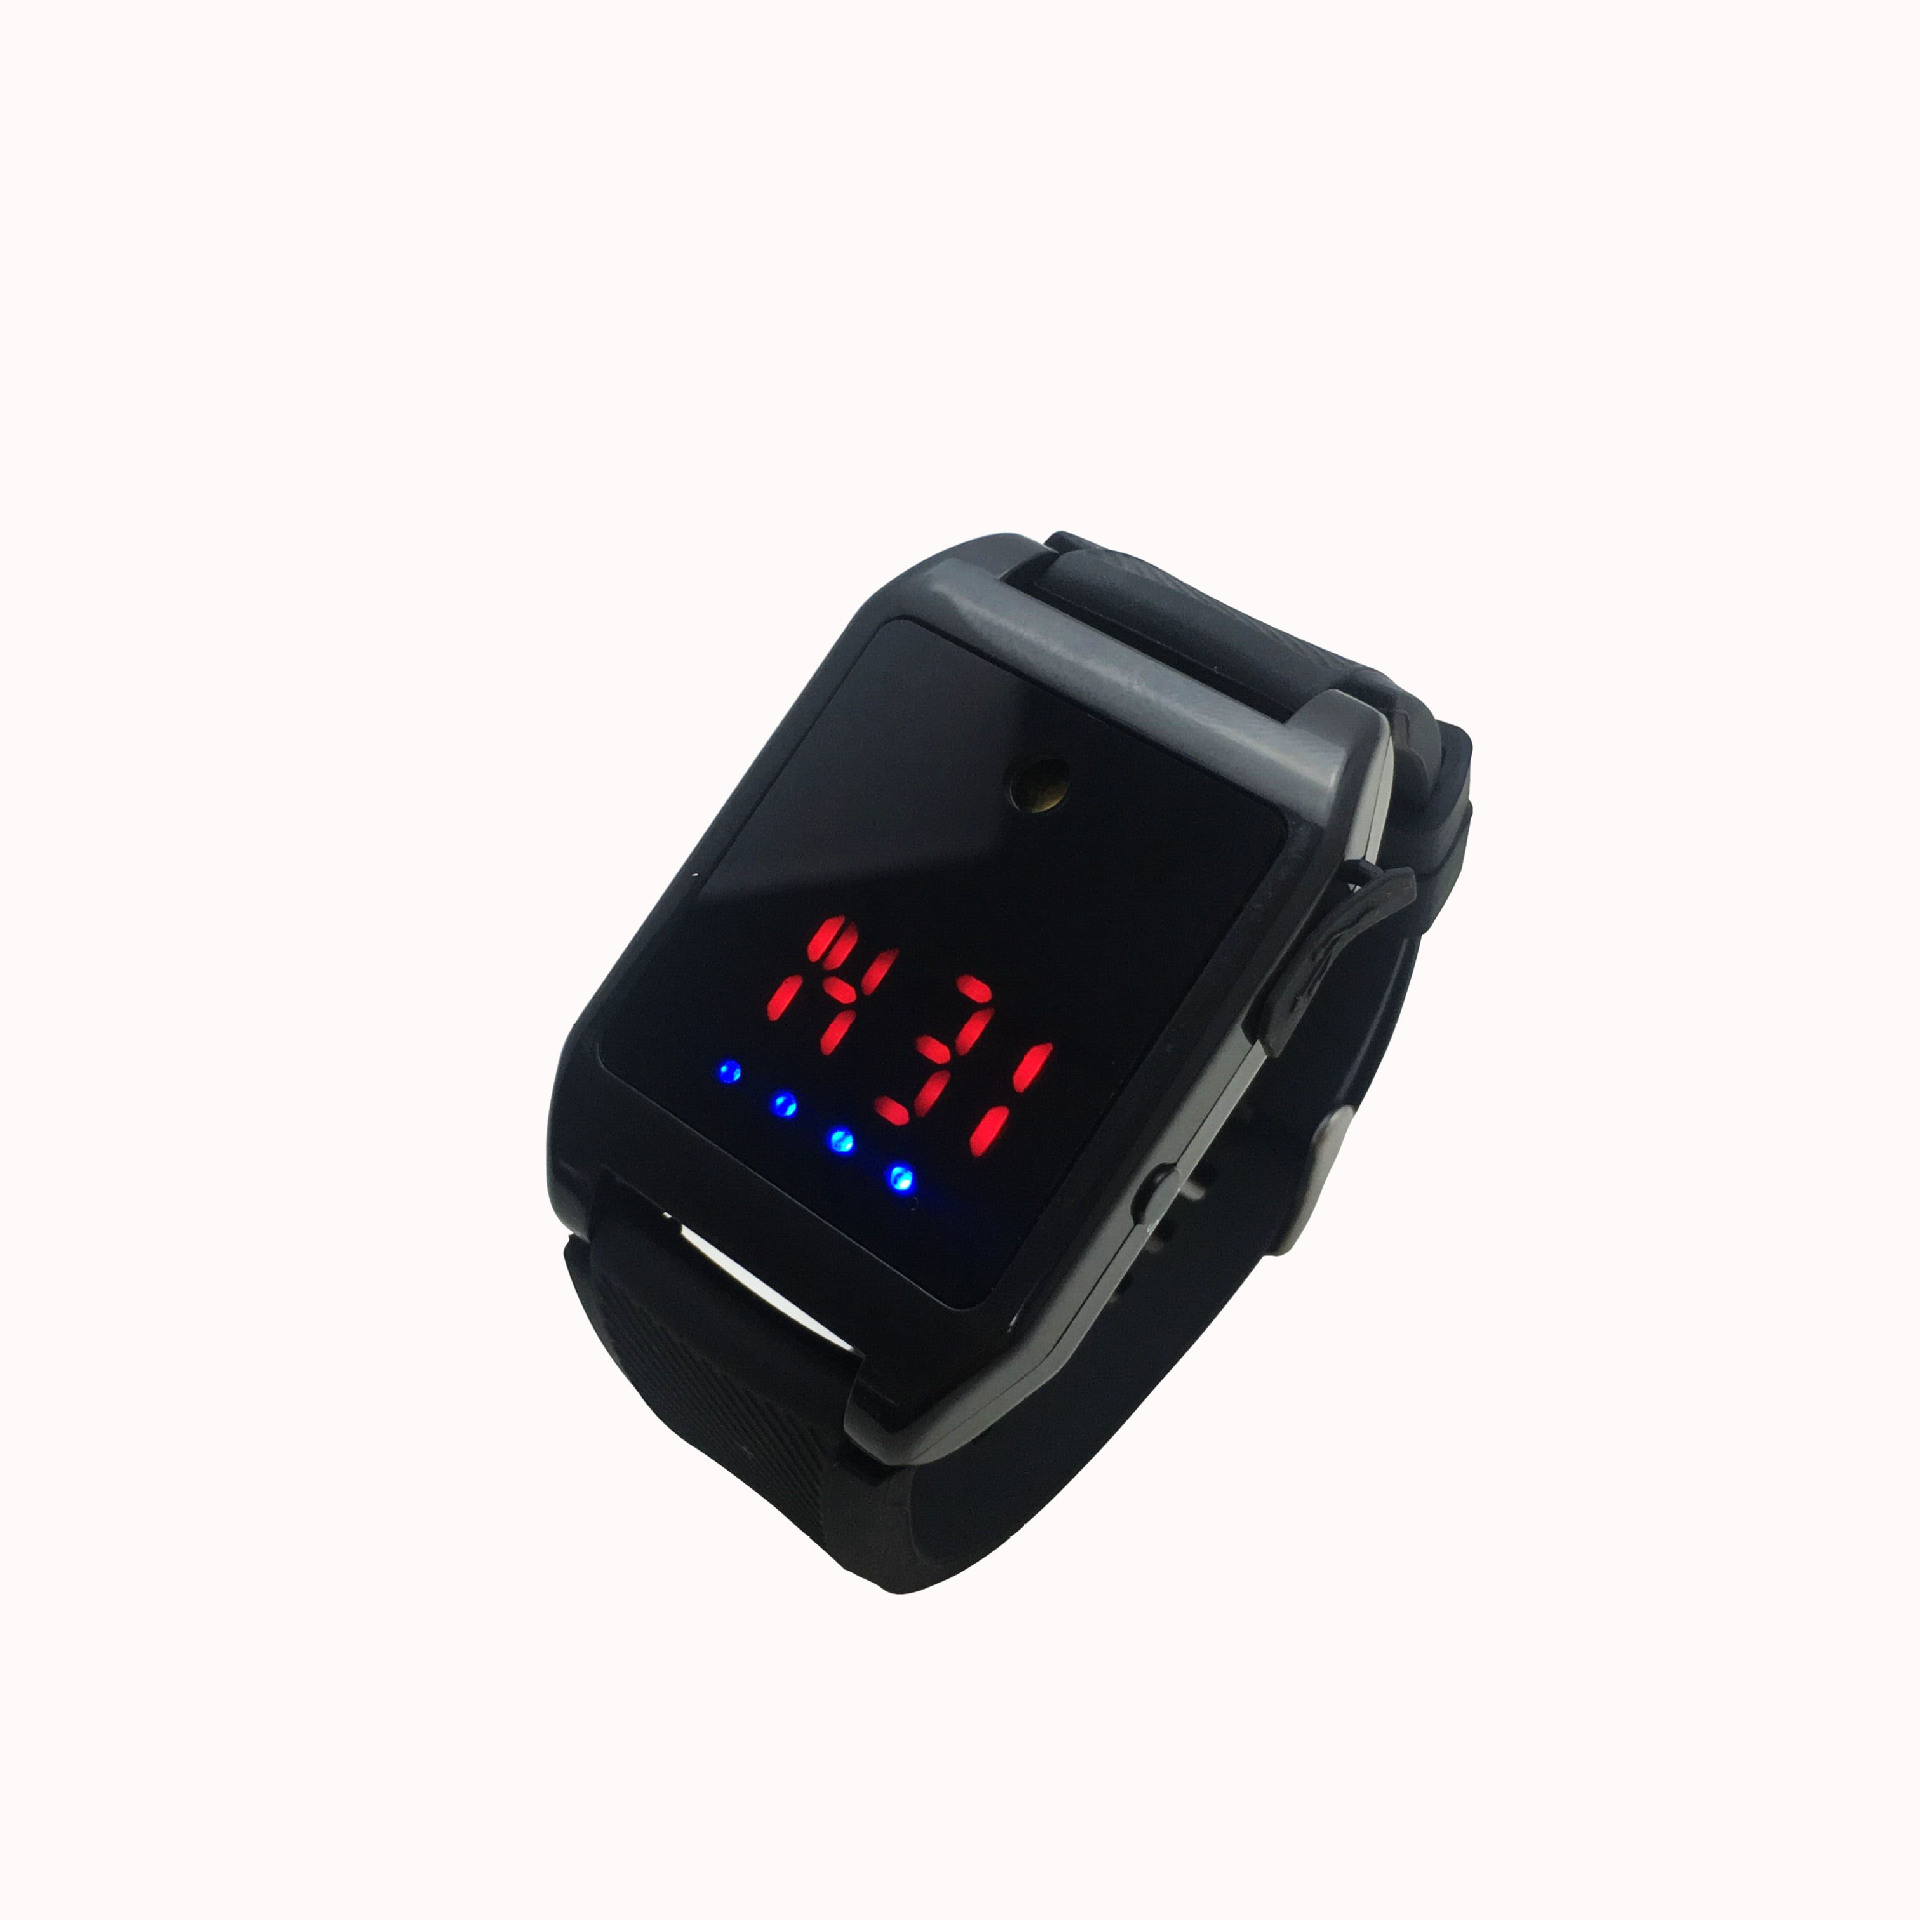 Watch Alarm, Rechargeable Anti Wolf, Necessary For Women To Go Out, Portable Alarm